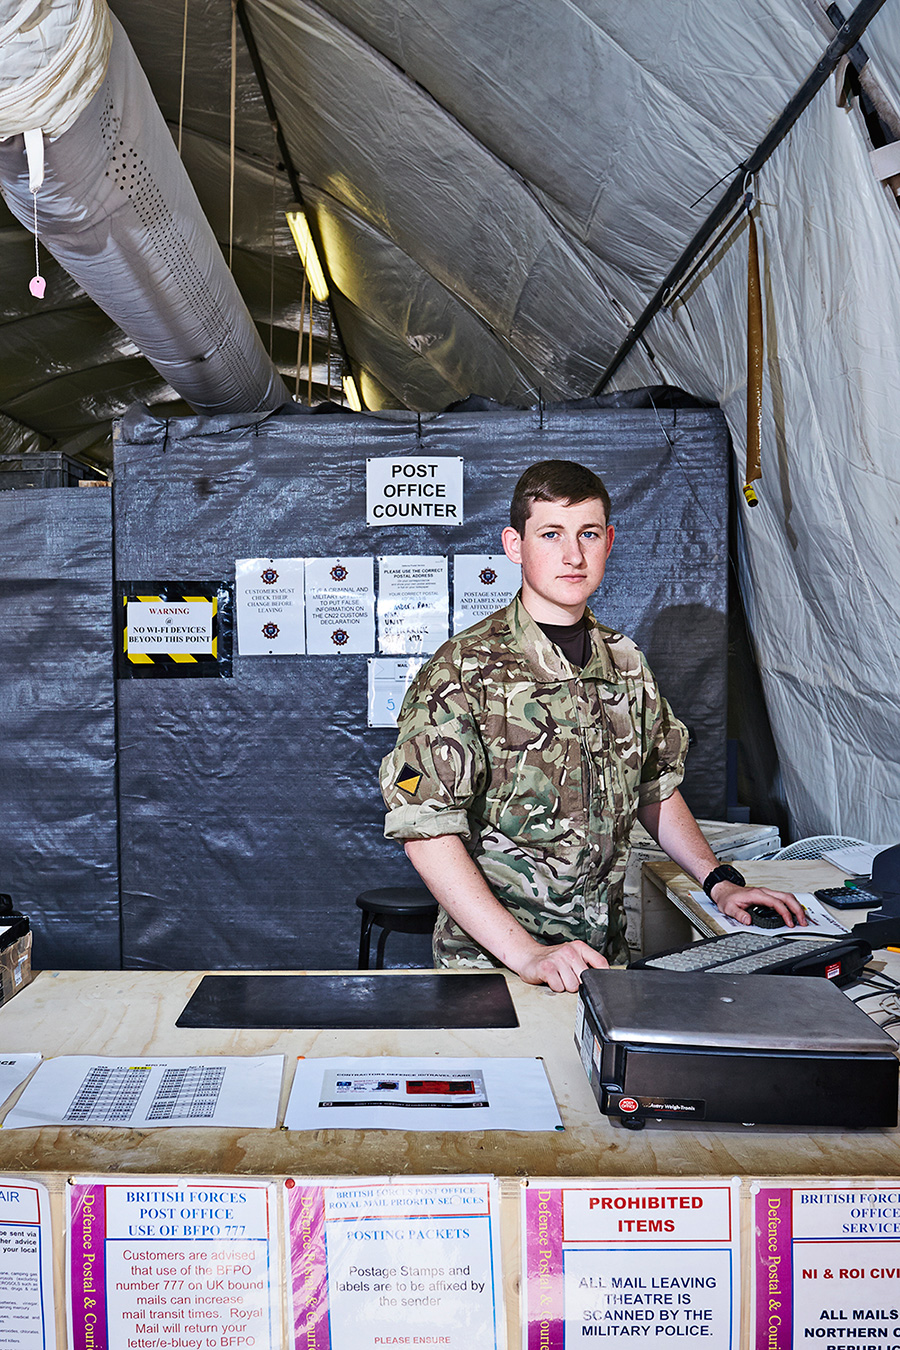 6 SHEET POSTER IN MUSWELL HILL, LONDON   Photographed in early May 2014 and situated in a large tunnel shaped tent, this is the Post Office counter in Camp Bastion.